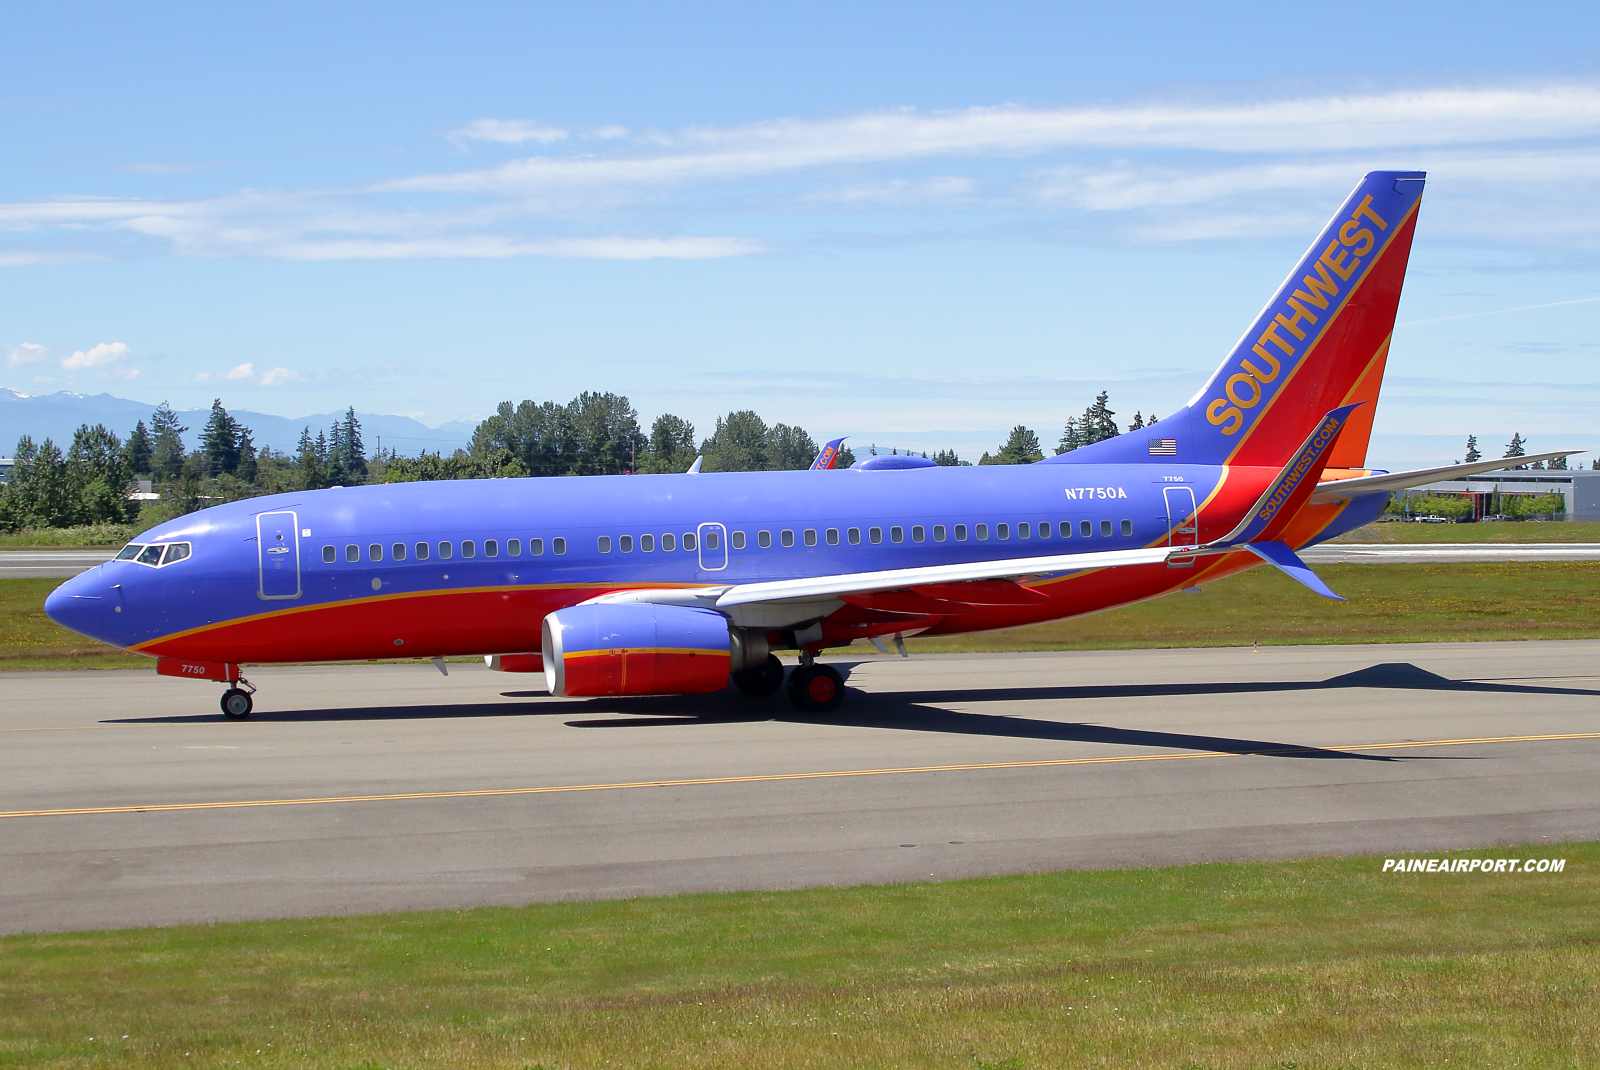 Southwest Airlines 737 N7750A at KPAE Paine Field